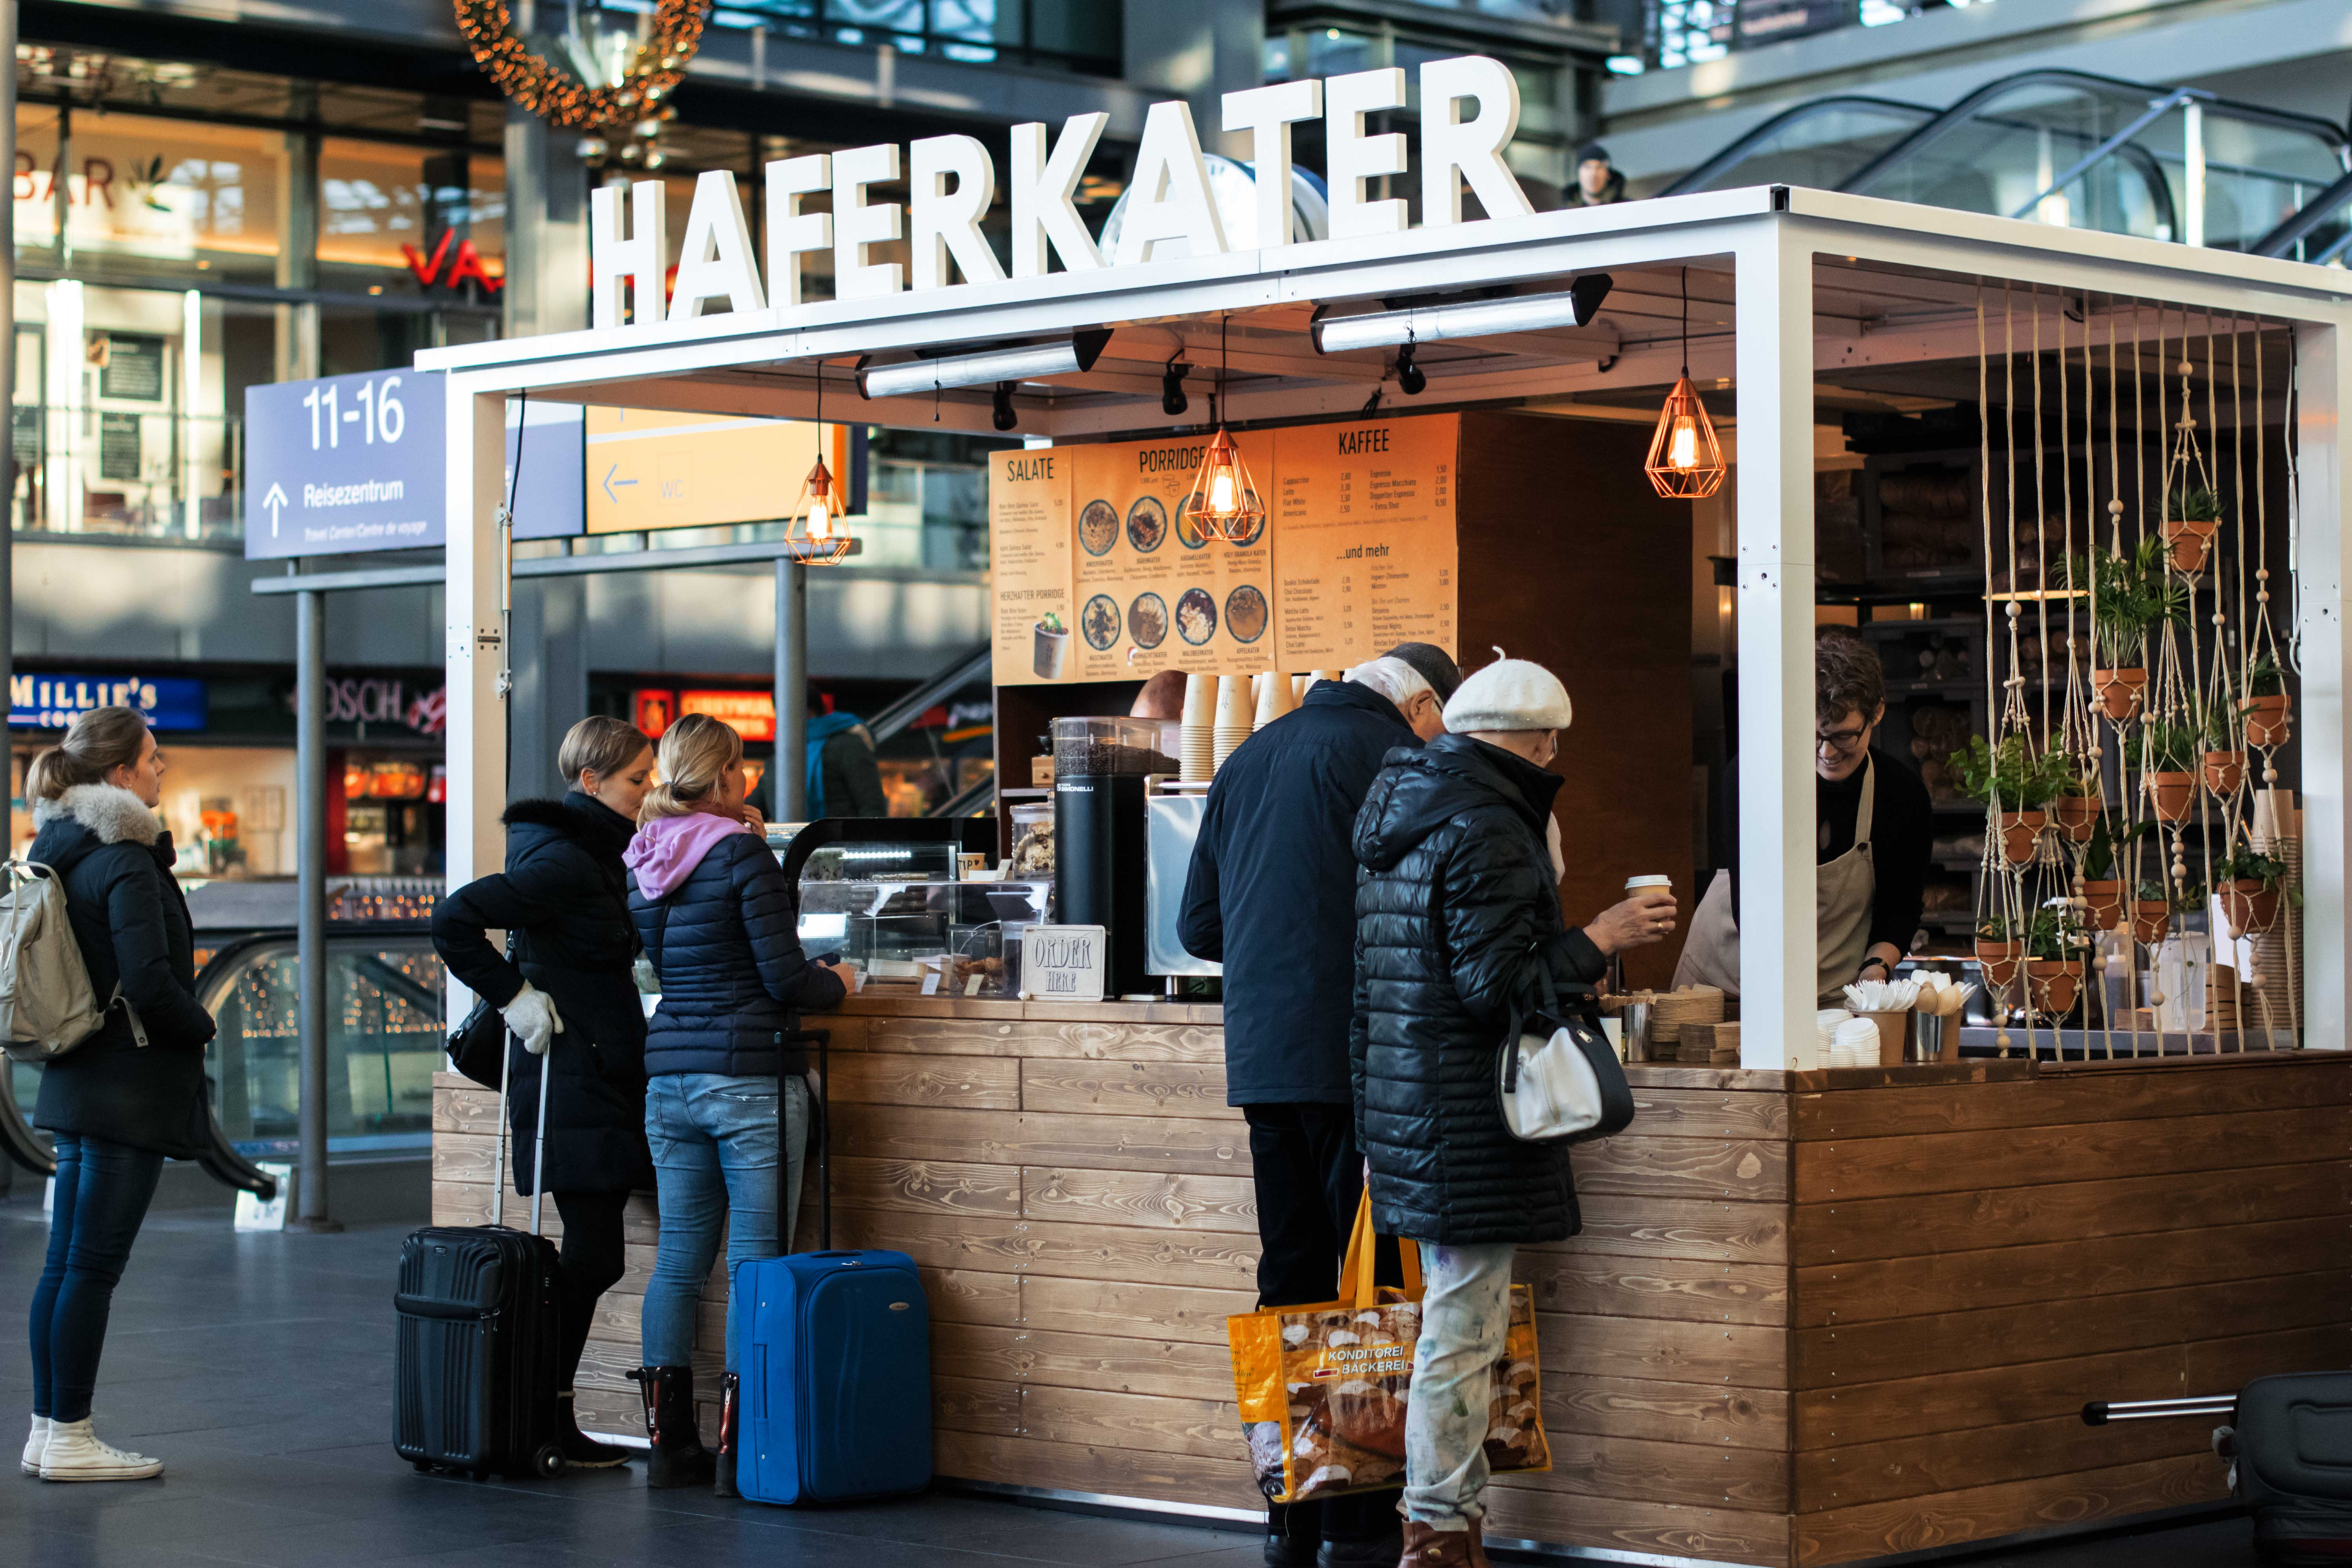 lecker der haferkater zieht in den hauptbahnhof ein mit vergn gen berlin. Black Bedroom Furniture Sets. Home Design Ideas